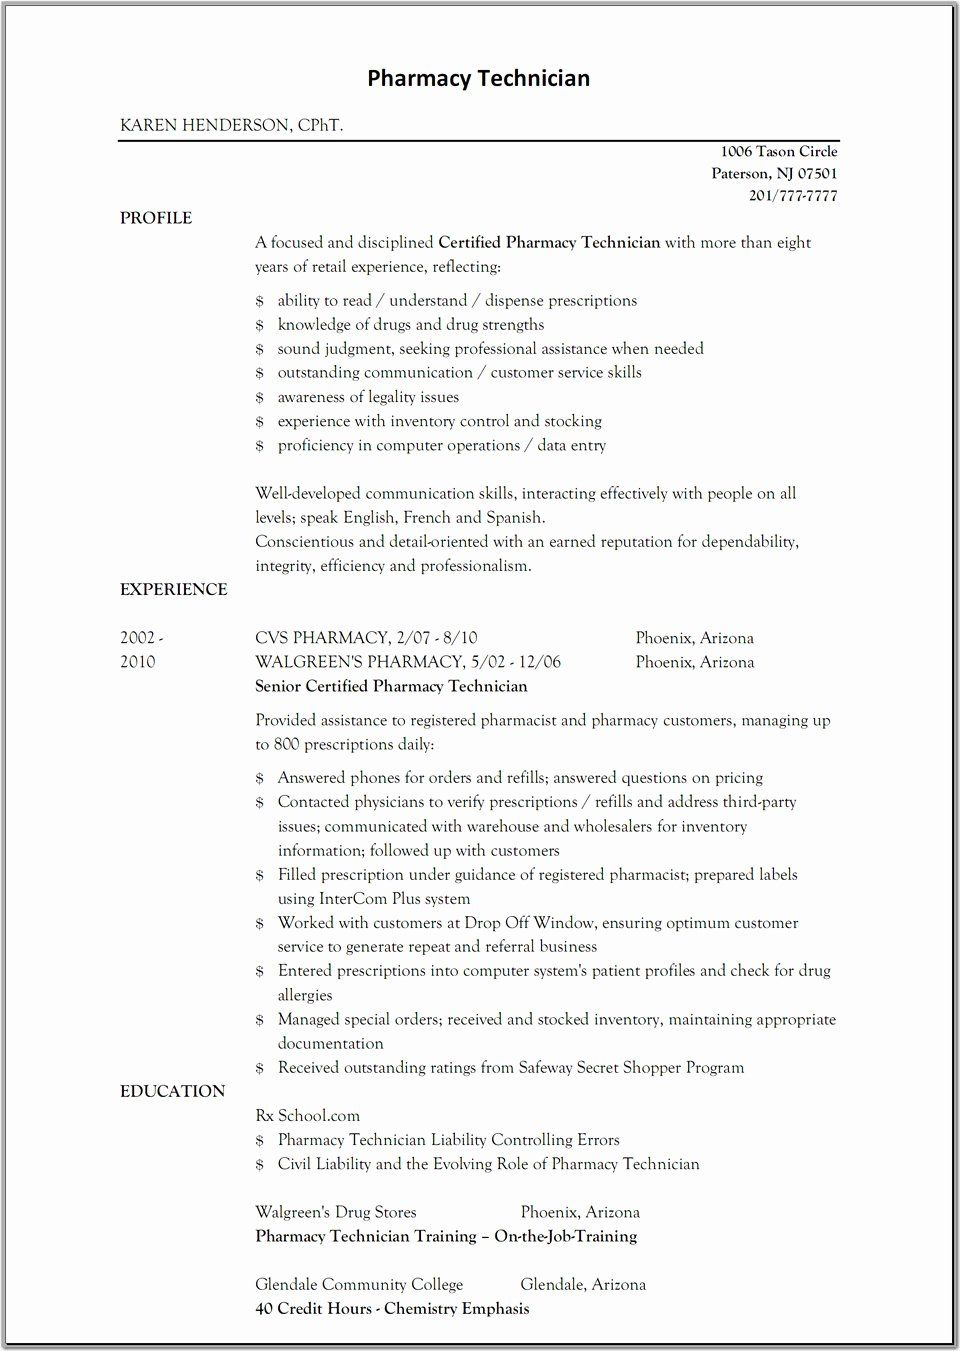 Pharmacy Technician Job Description Resume Lovely Sample